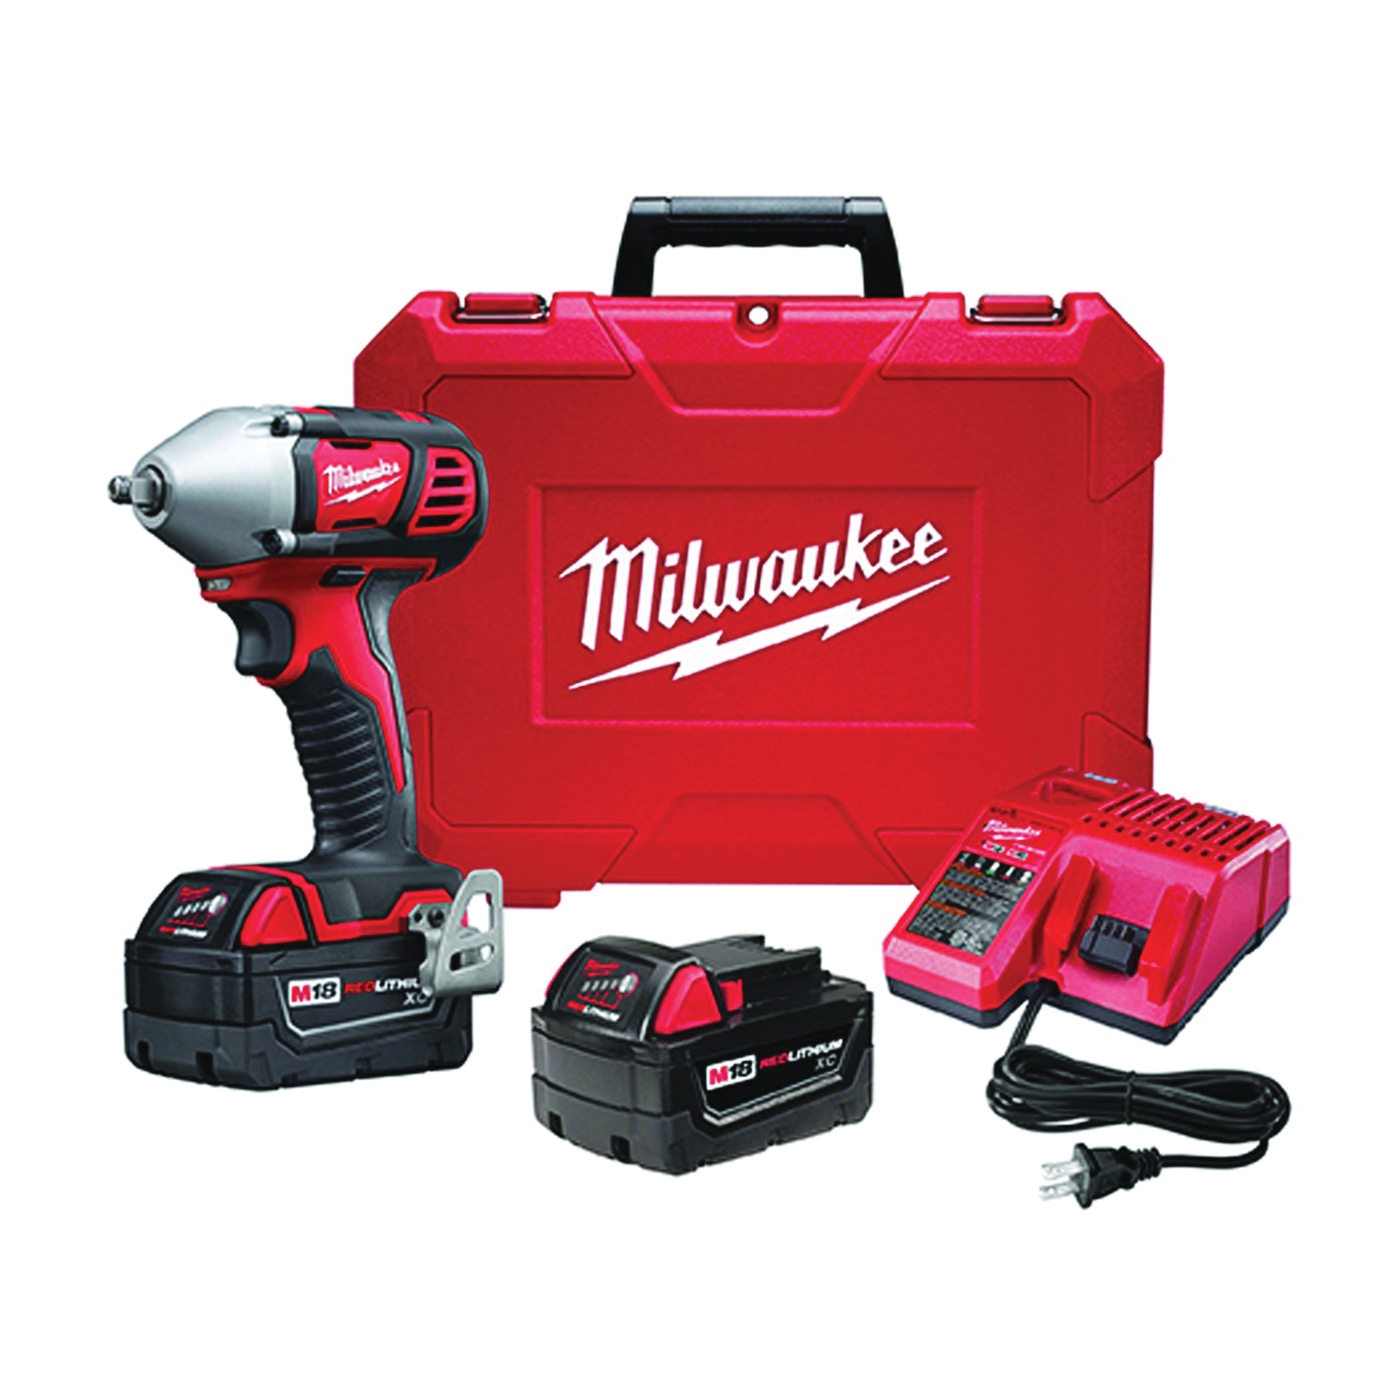 Picture of Milwaukee 2658-22 Impact Wrench Kit, Kit, 18 V Battery, 3 Ah, 3/8 in Drive, Square Drive, 167 ft-lb